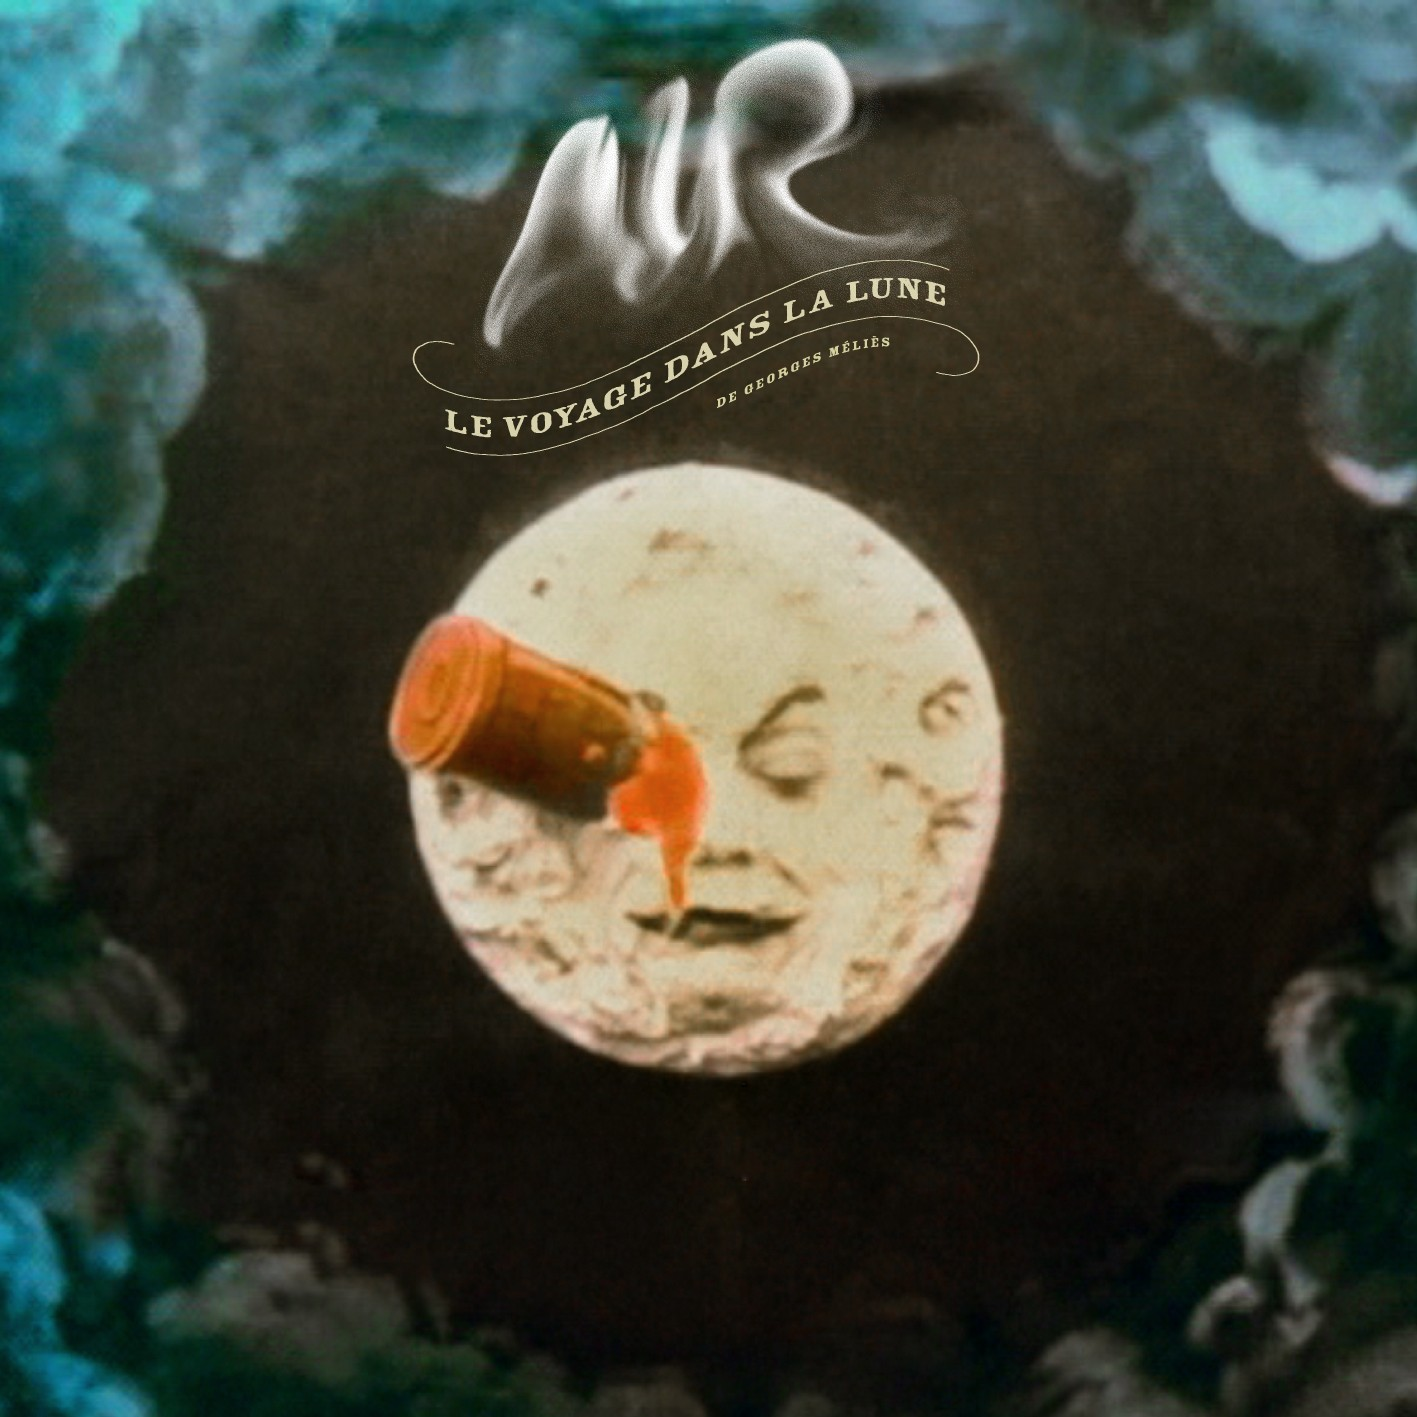 AIR - Premiers Symptomes - Moon Safari - 10 000 Hz Legend